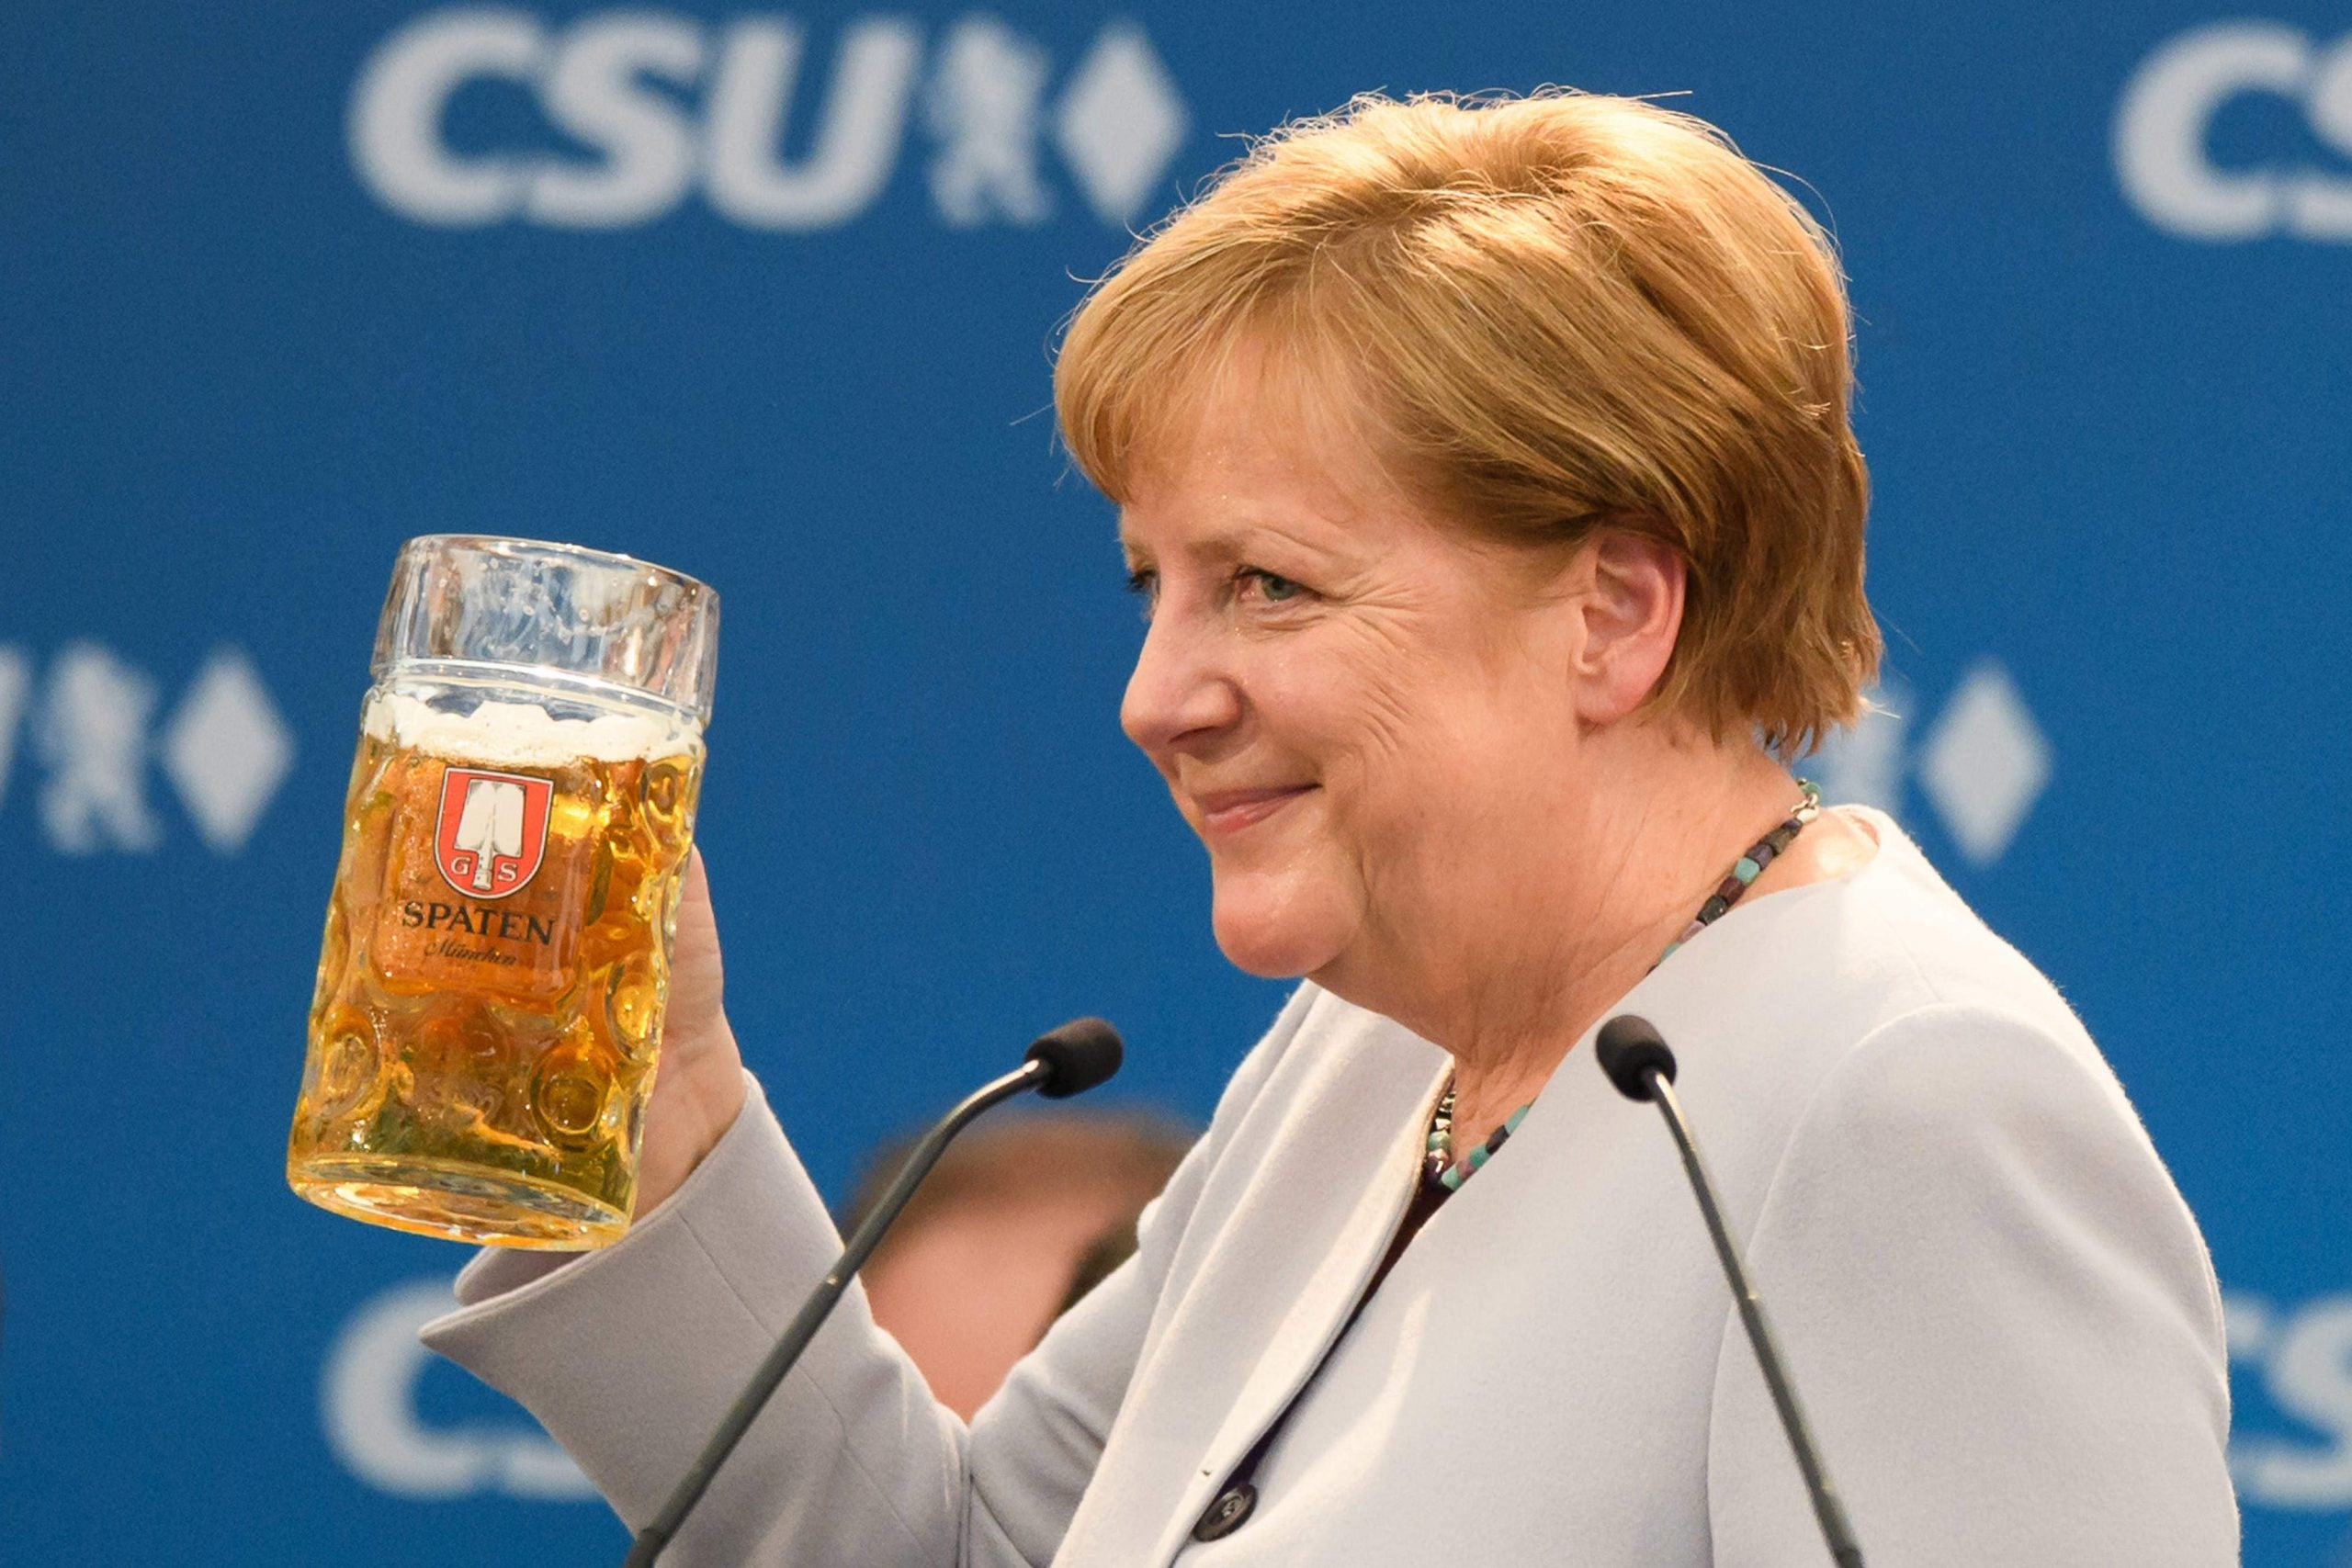 Merkel's harsh words on Brexit played to her German audience – but the UK should still take note